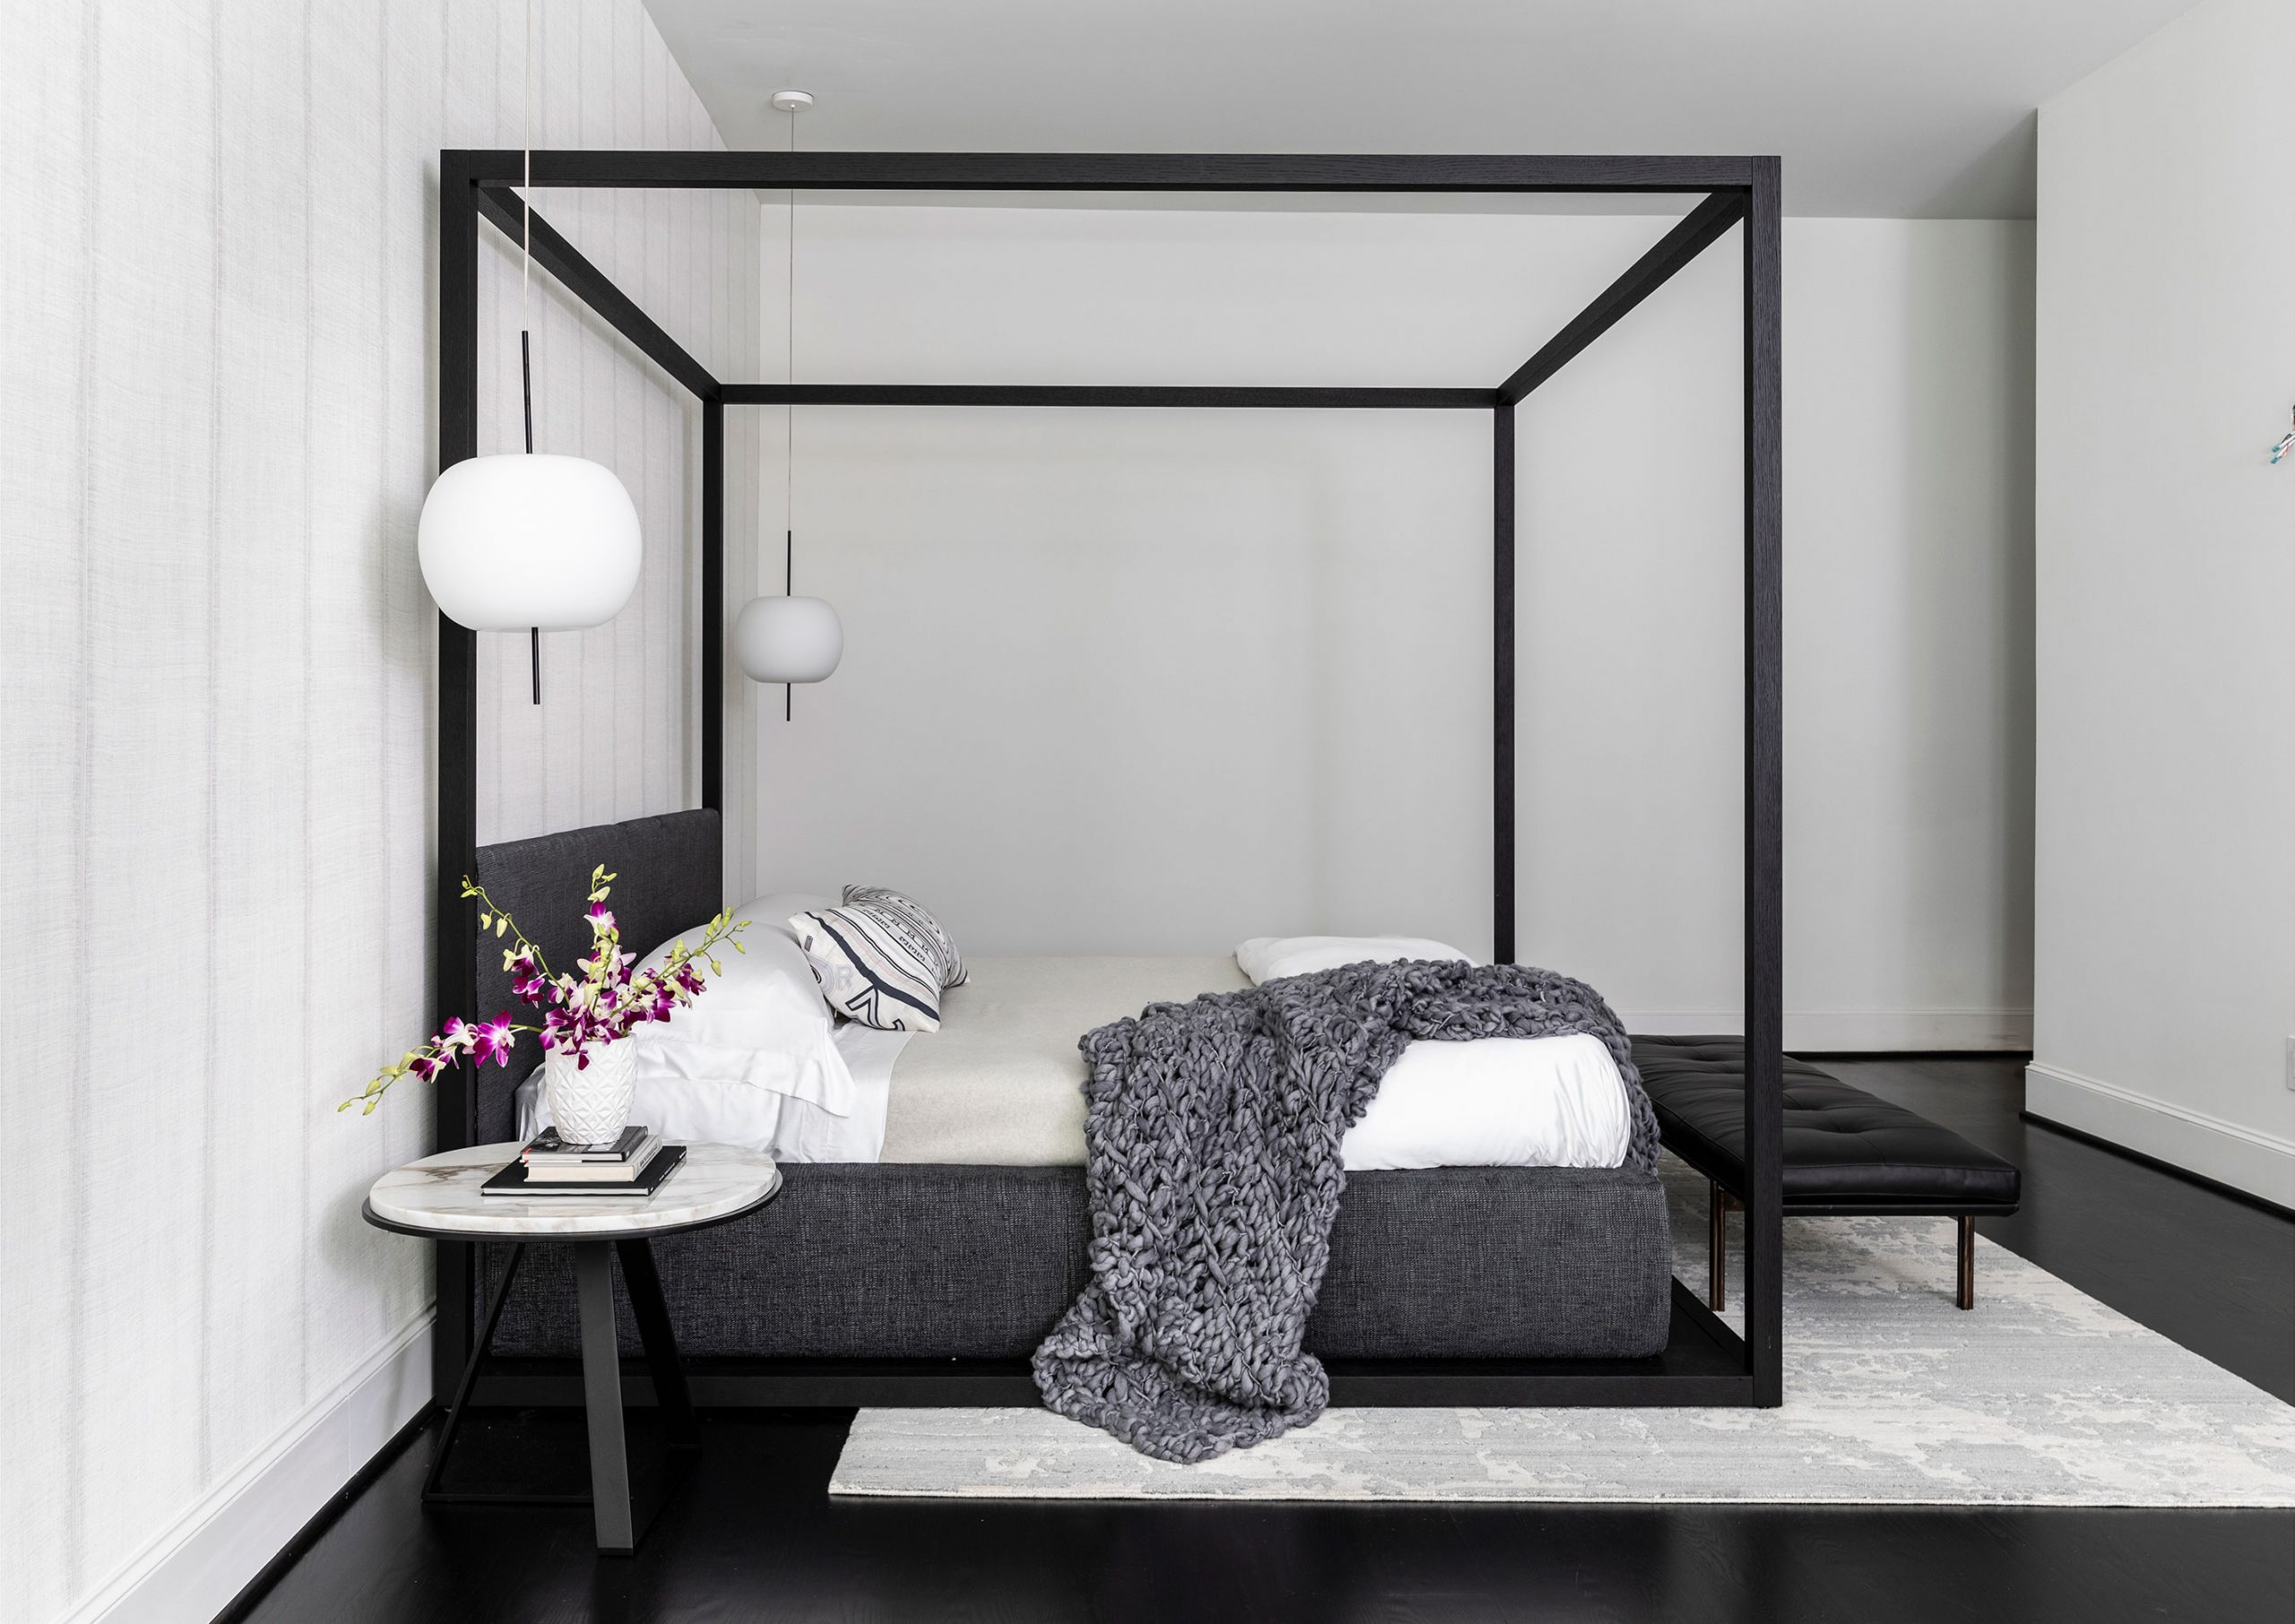 Bed Interiors Photography - Julie Soefer Photography